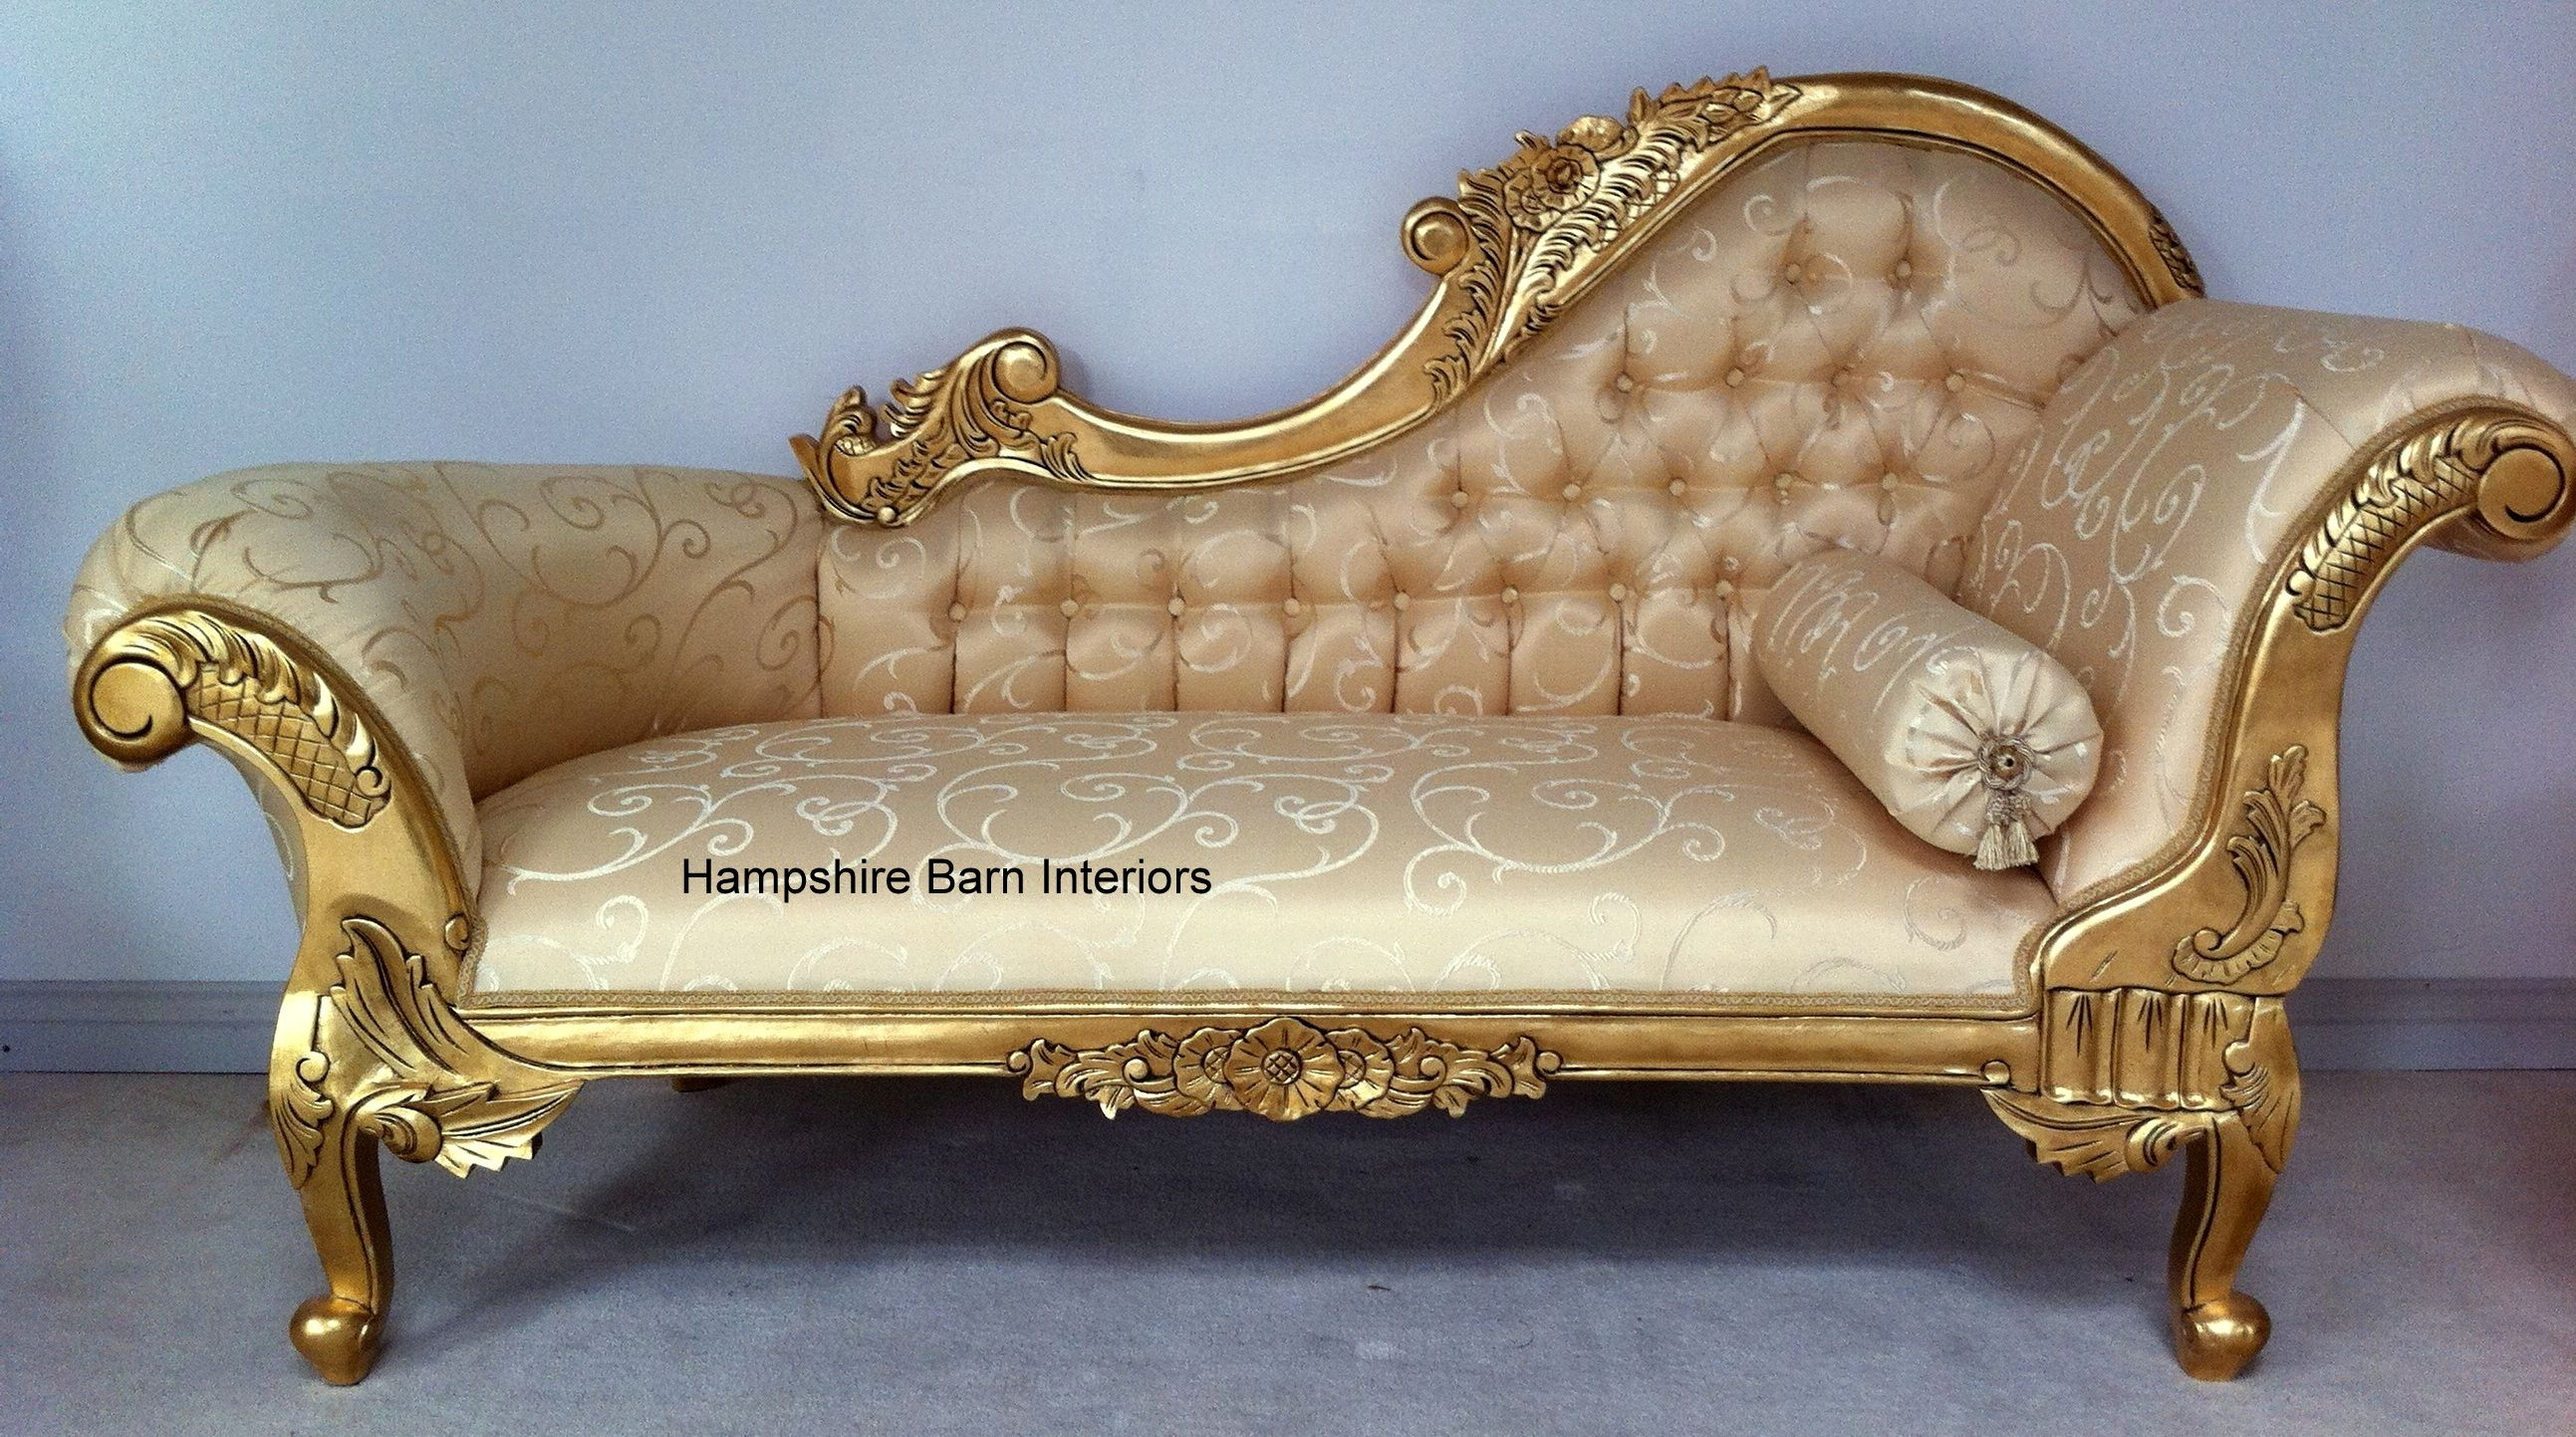 Gold Leaf French Provincial Furniture Tuscan Old World Italian French Decor Gold Furniture